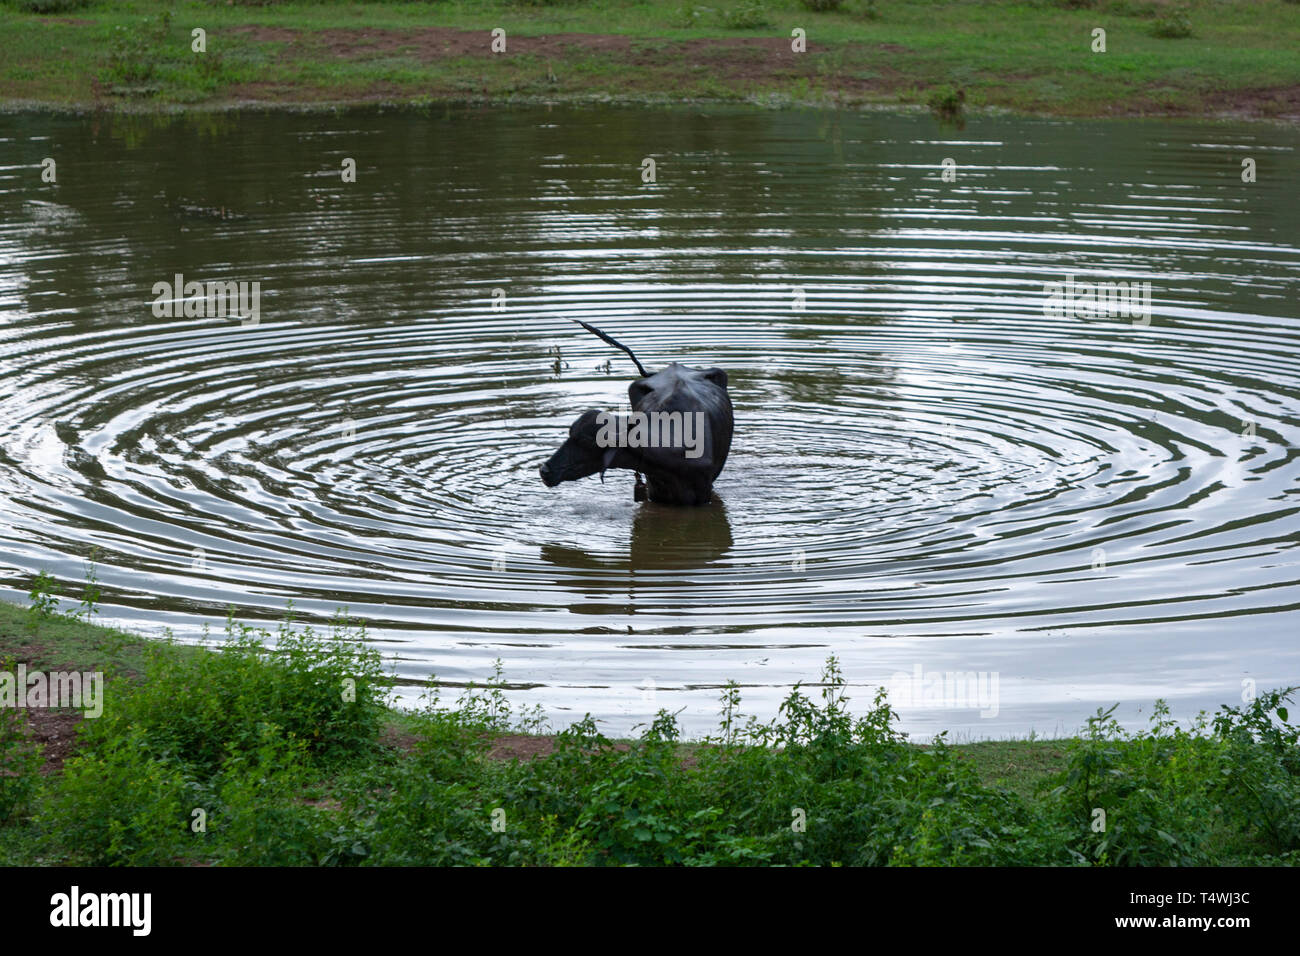 buffalo in a pool, doing concentric waves, Bundi, Rajasthan, India - Stock Image